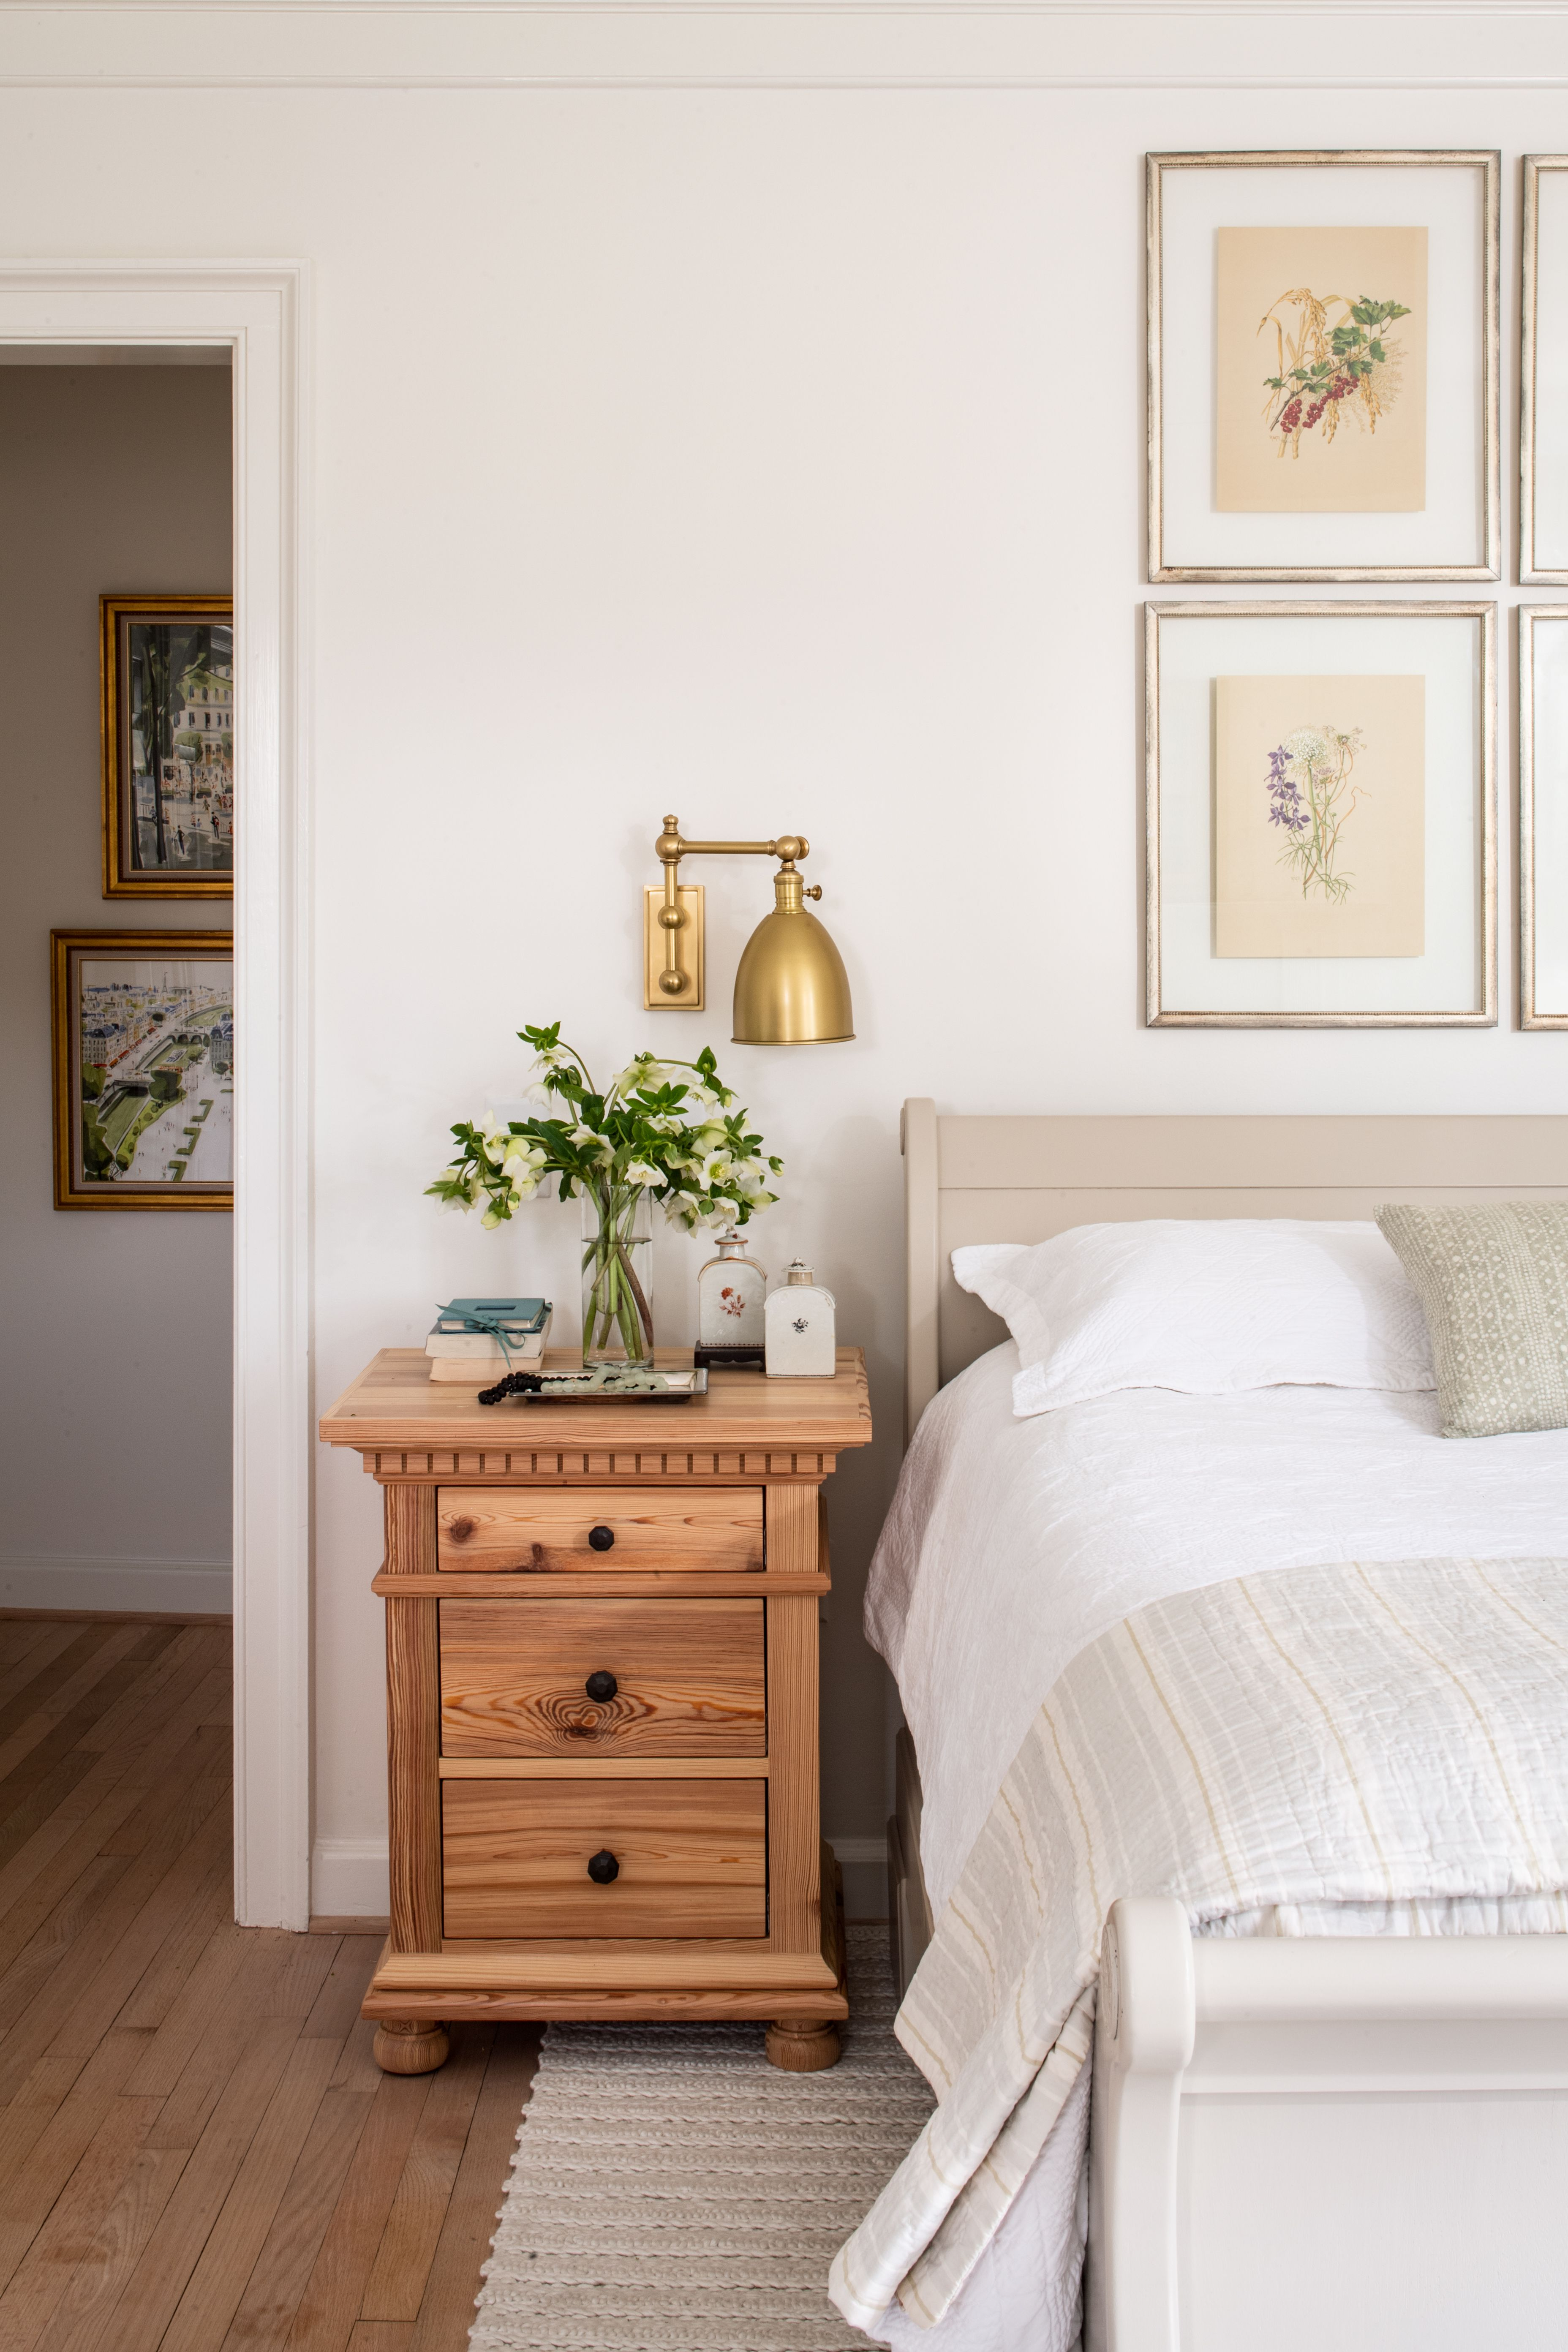 9 Essential French Country Design And Decor Ideas